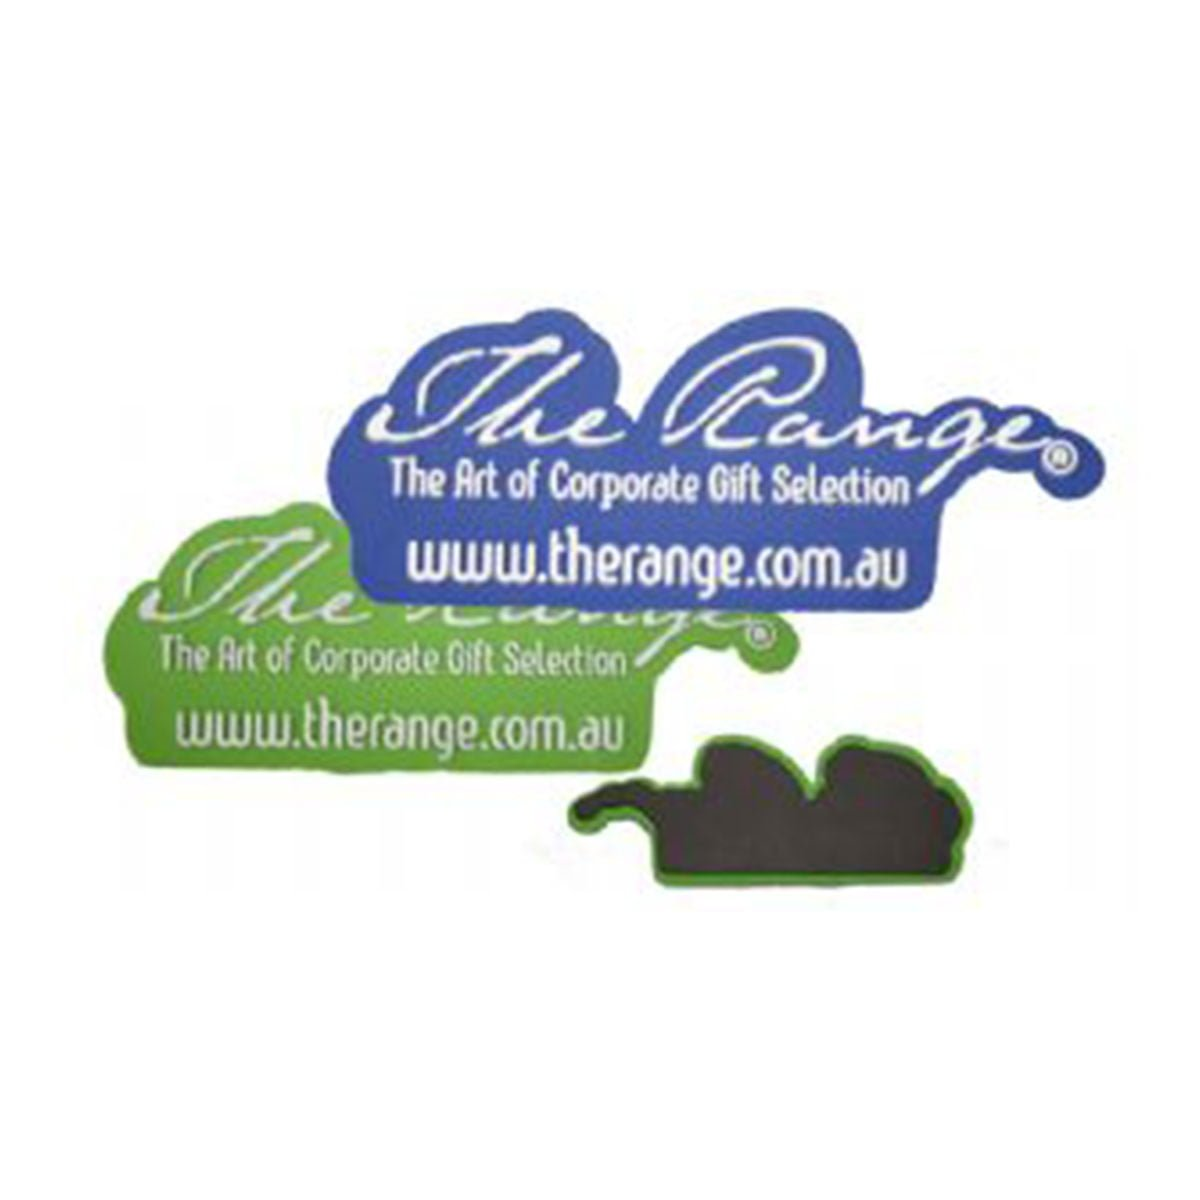 PVC Fridge Magnet-Available in any PMS colour.